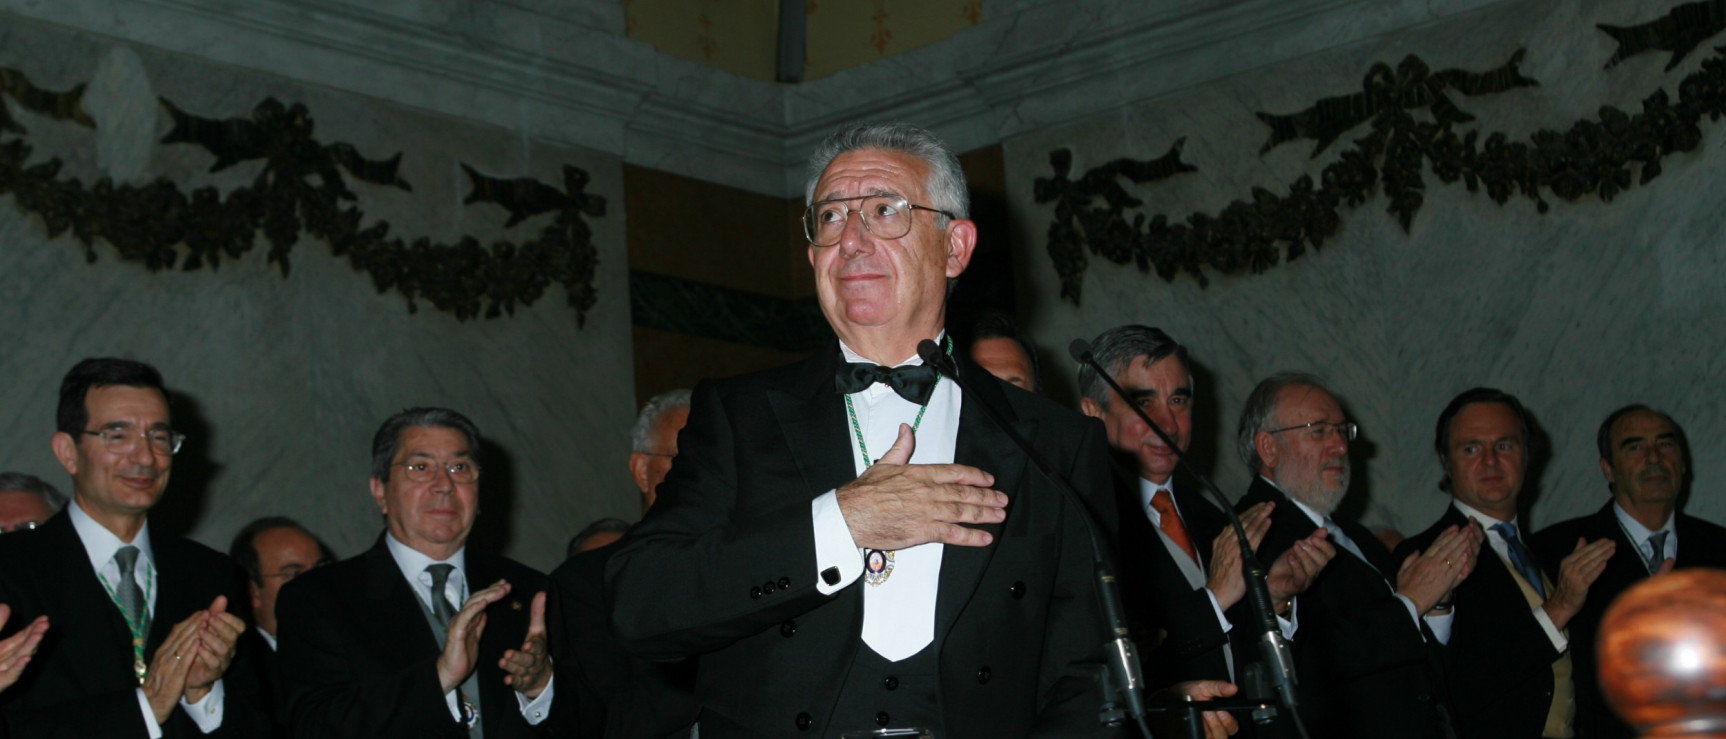 Pedro García Barreno